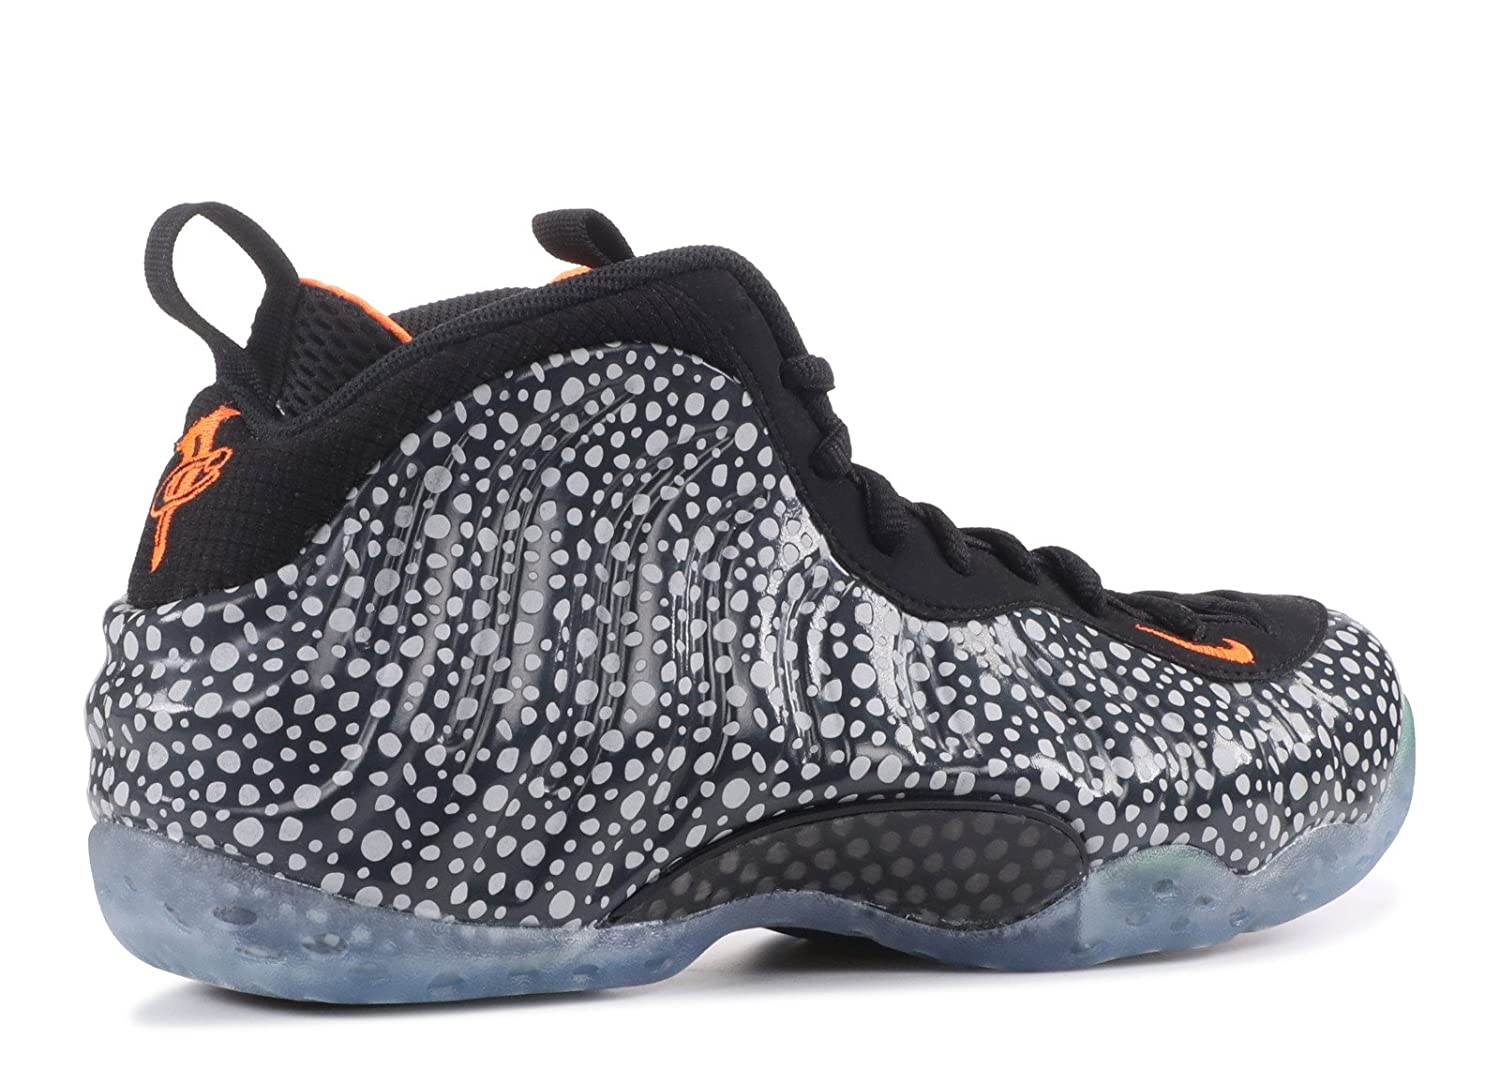 Nike Mens Air Synthetic Foamposite One PRM